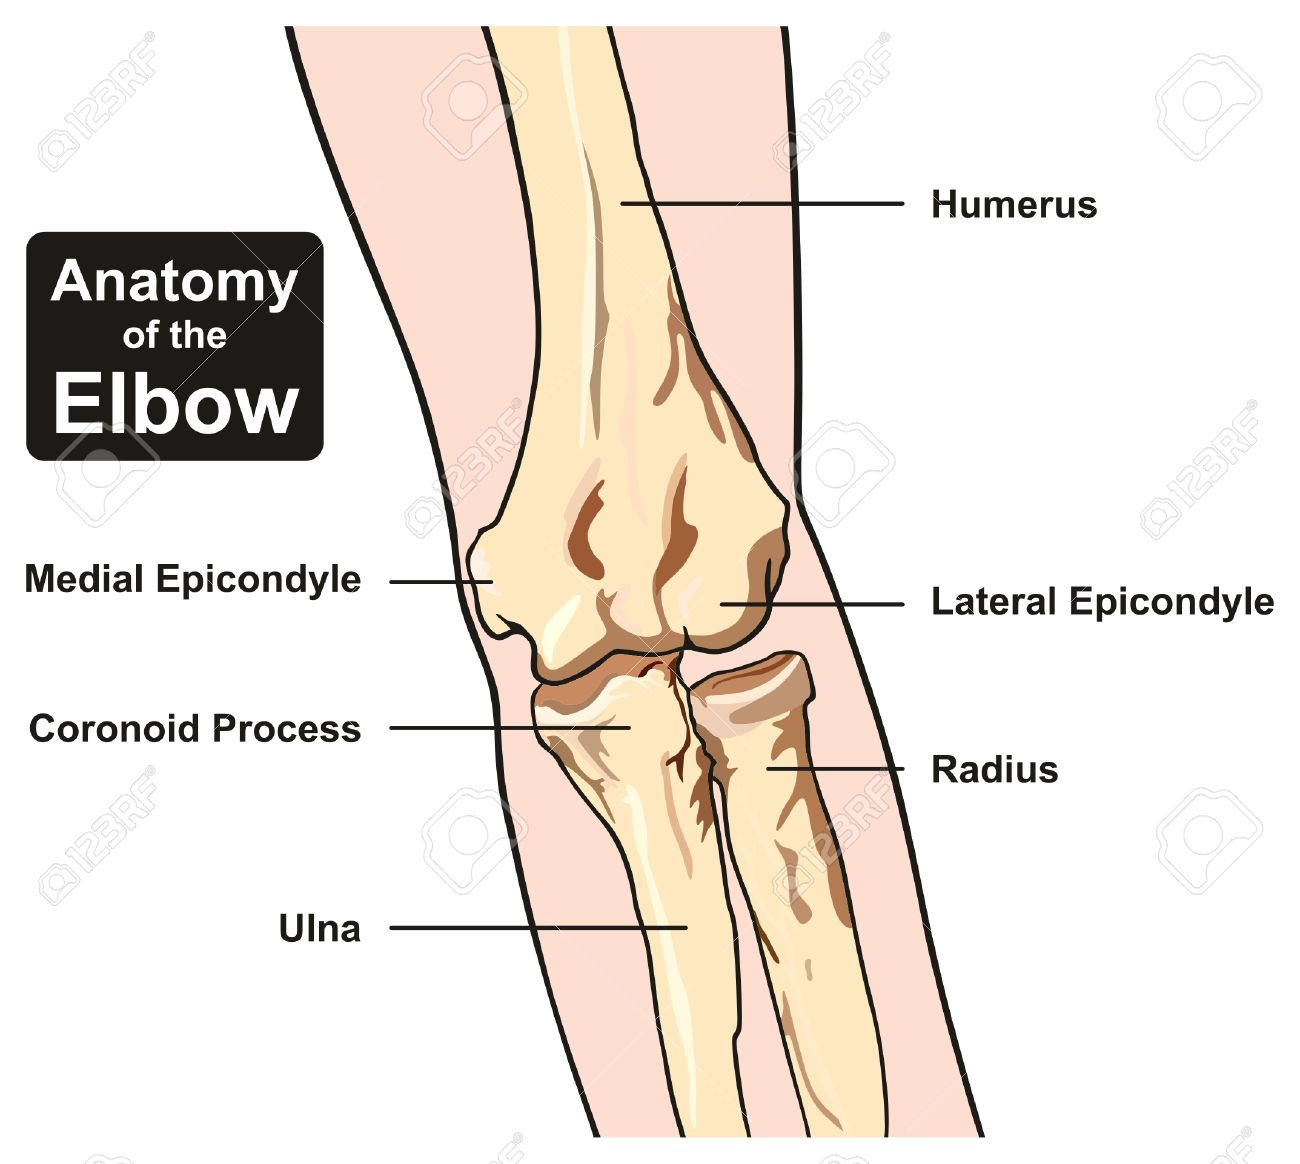 hight resolution of anatomy of the elbow joint diagram including all bones humerus radius ulna for medical science education